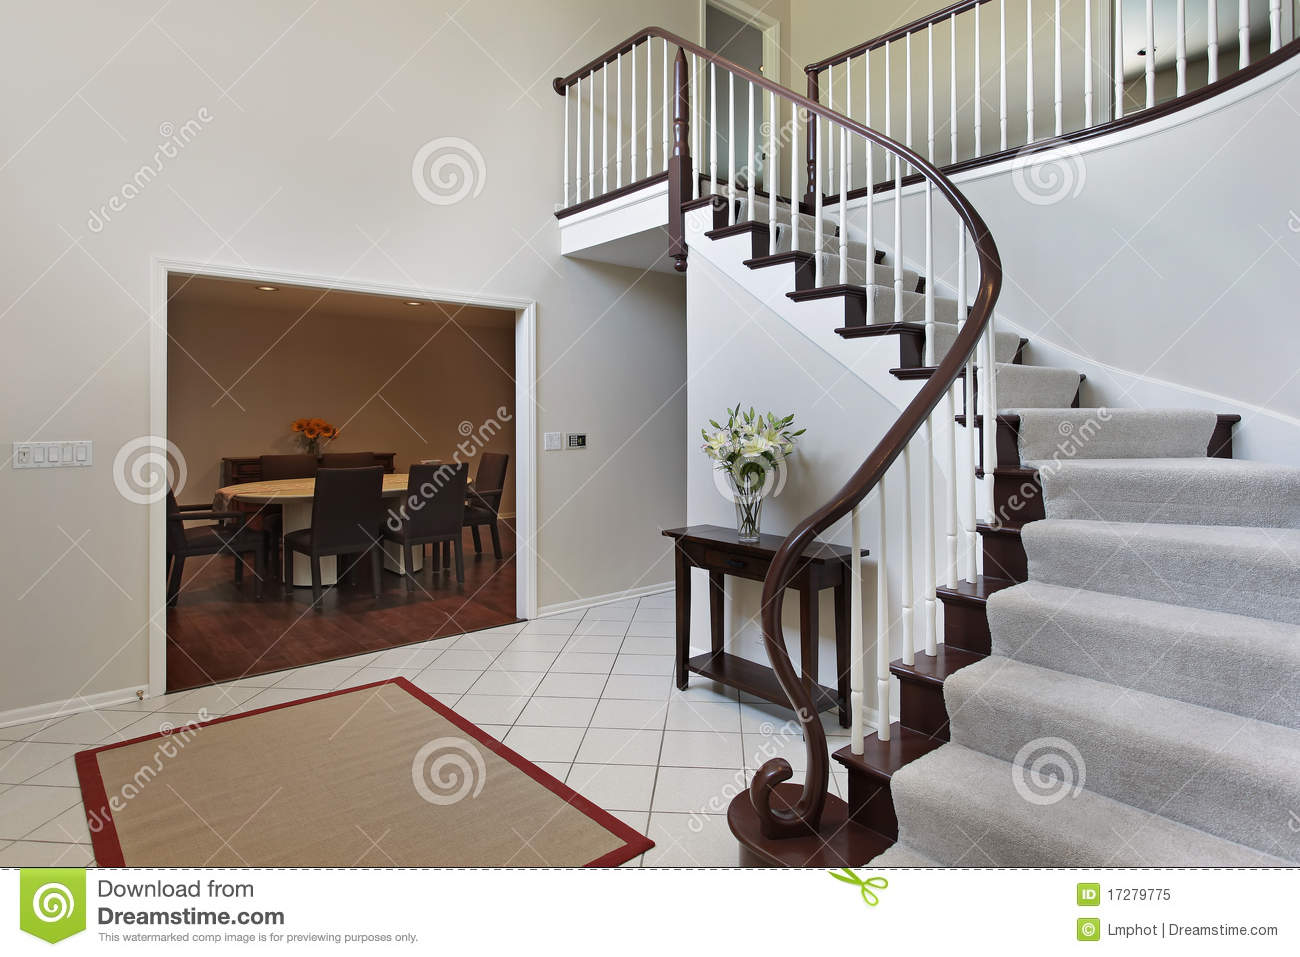 Foyer Clipart : Foyer with curved staircase royalty free stock photo